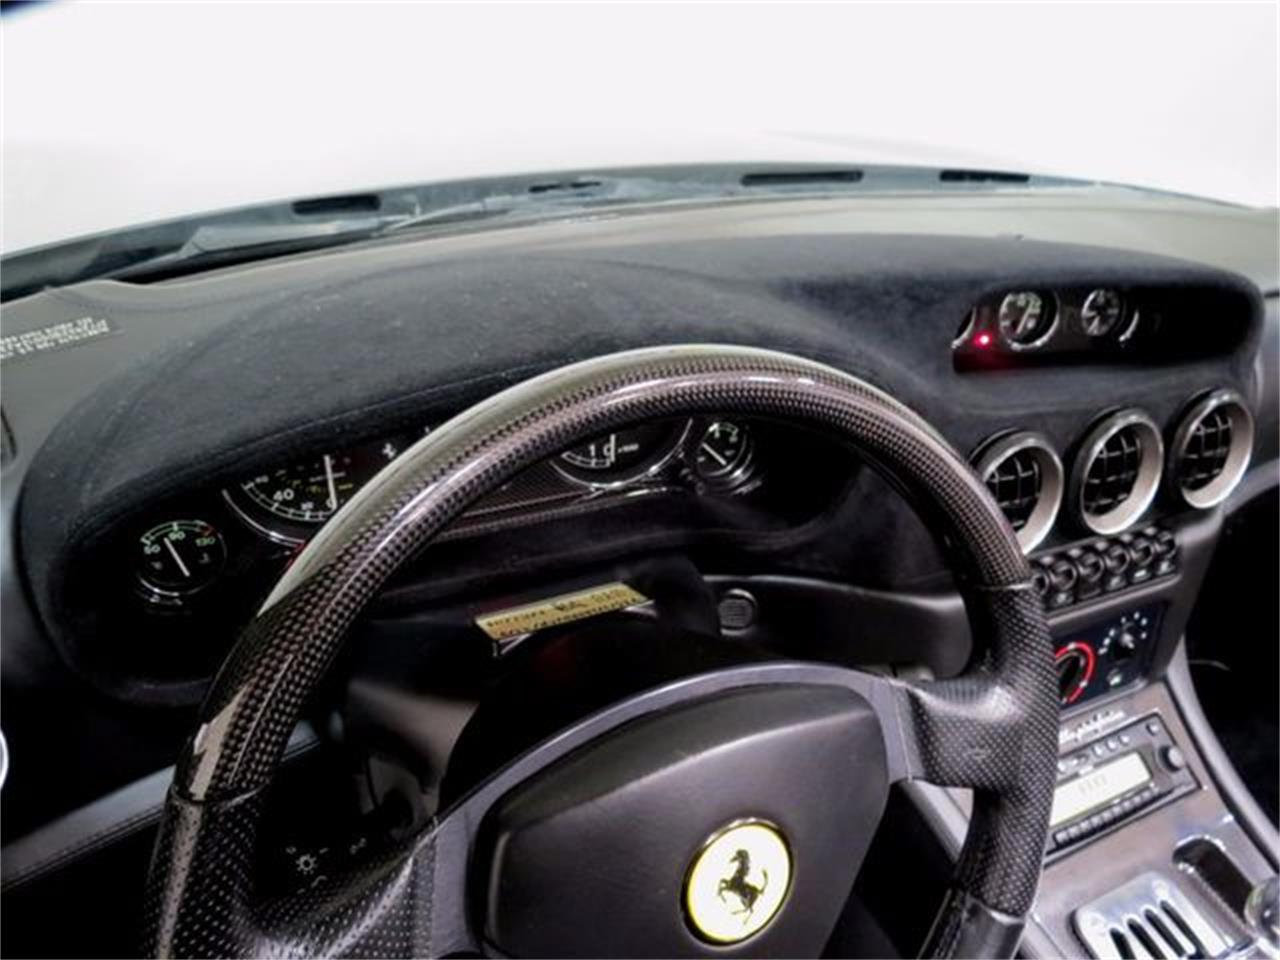 2001 Ferrari 550 Barchetta (CC-1336874) for sale in Scottsdale, Arizona